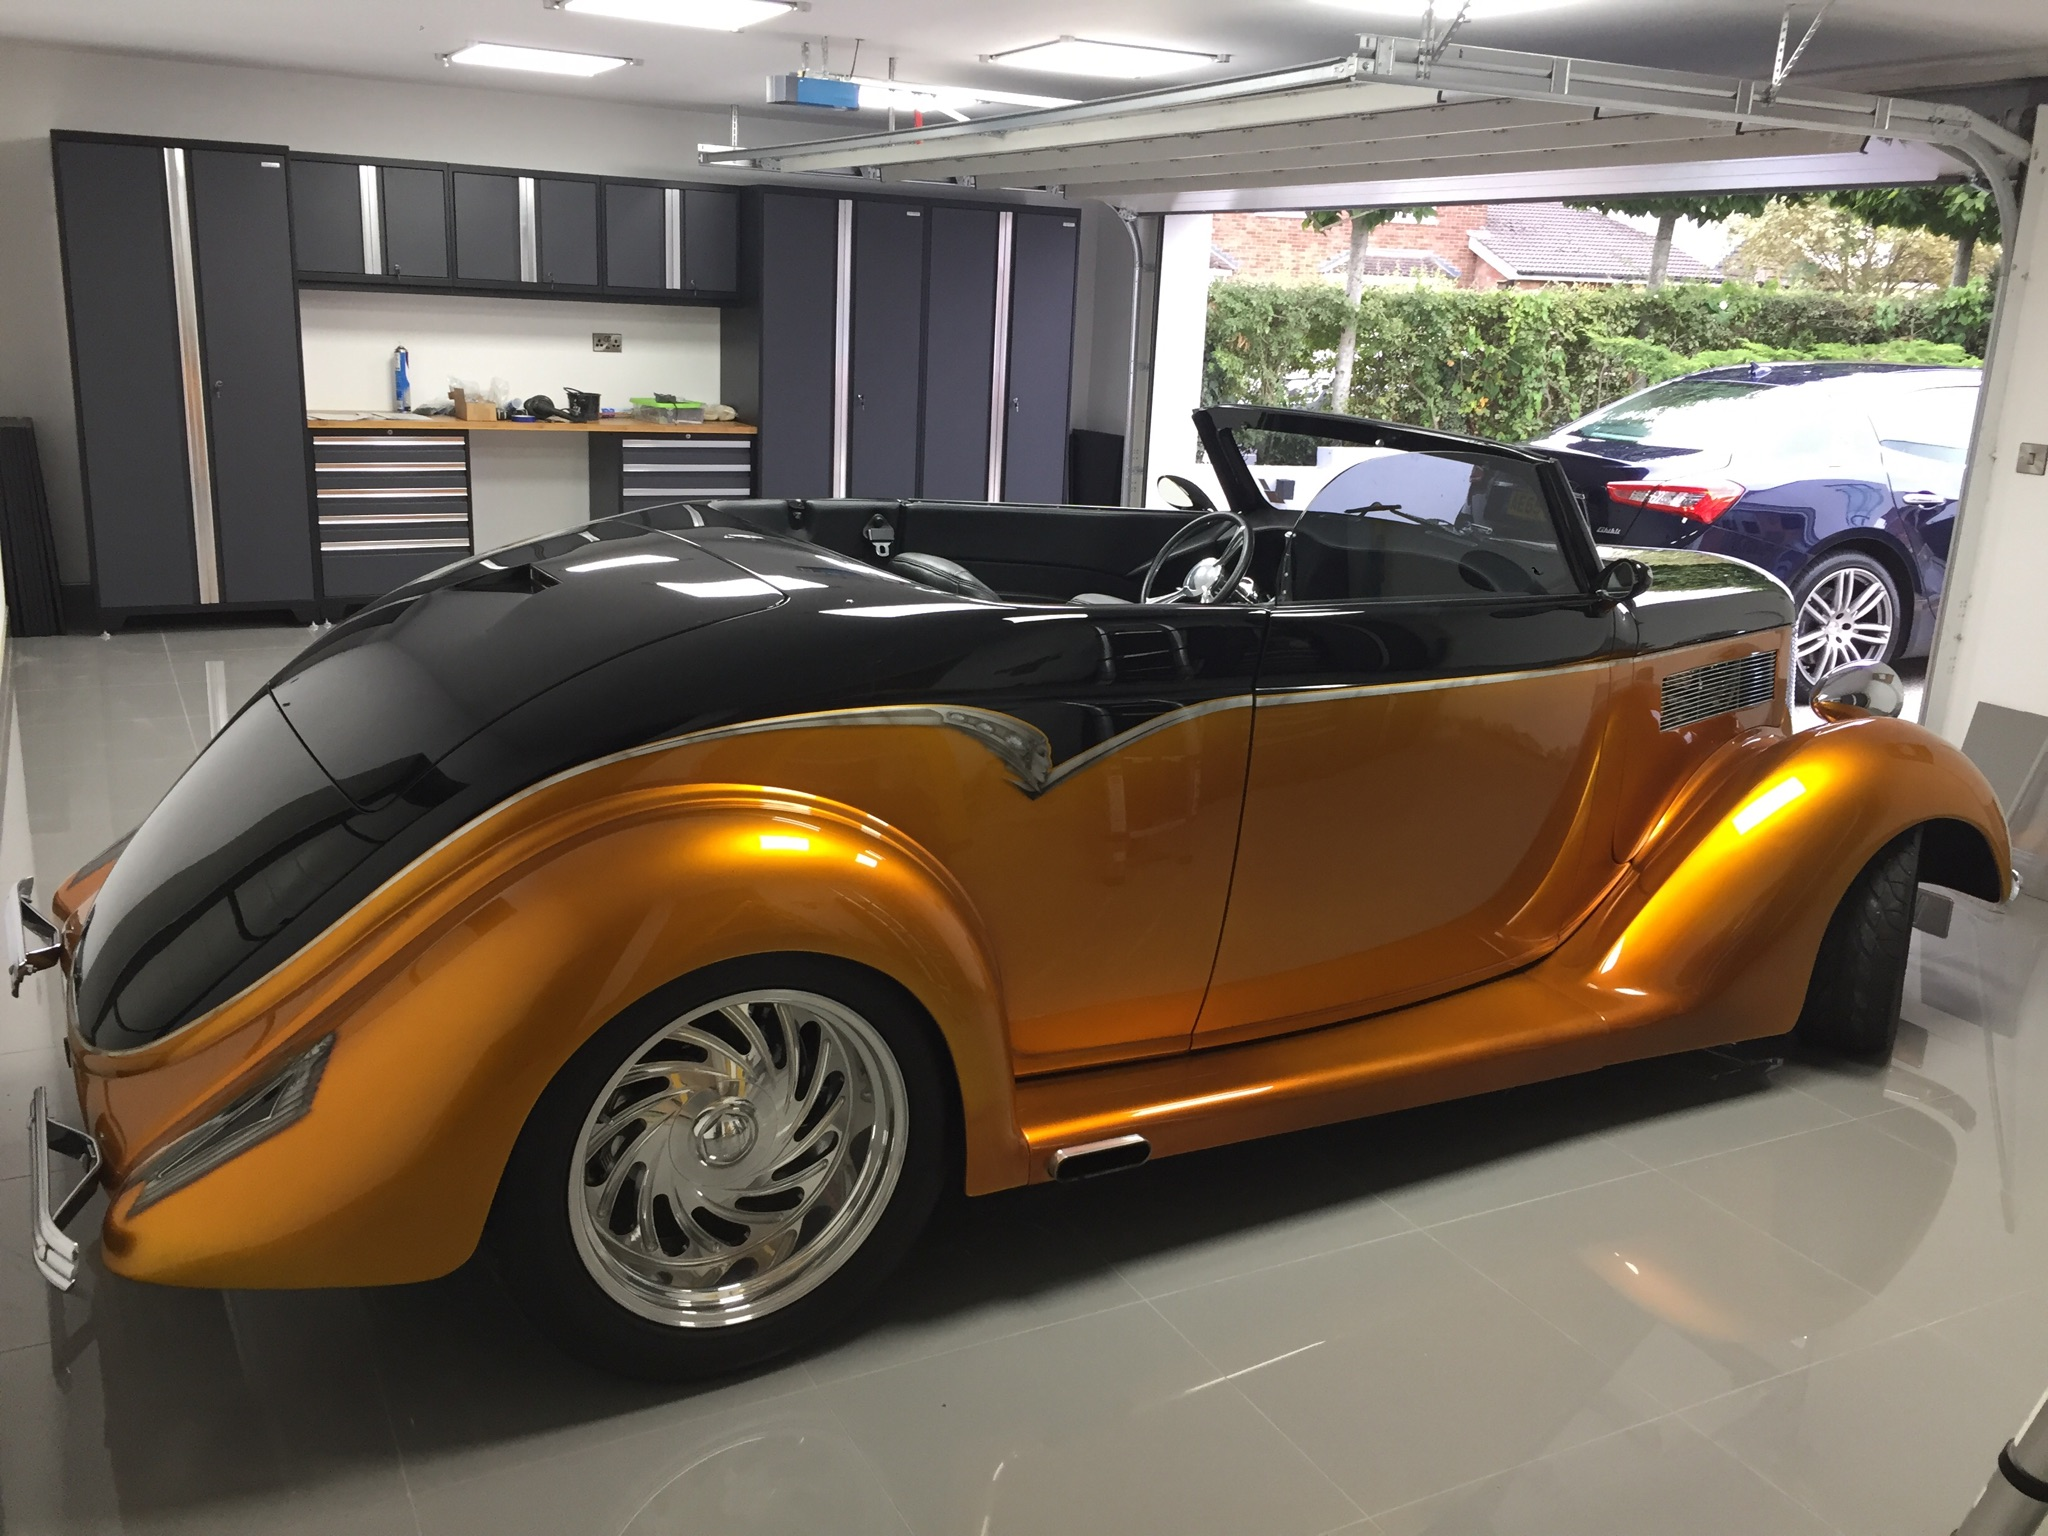 A customer's beautiful Ford hot rod - and a set of our Pro Series cabinets. A great combination!